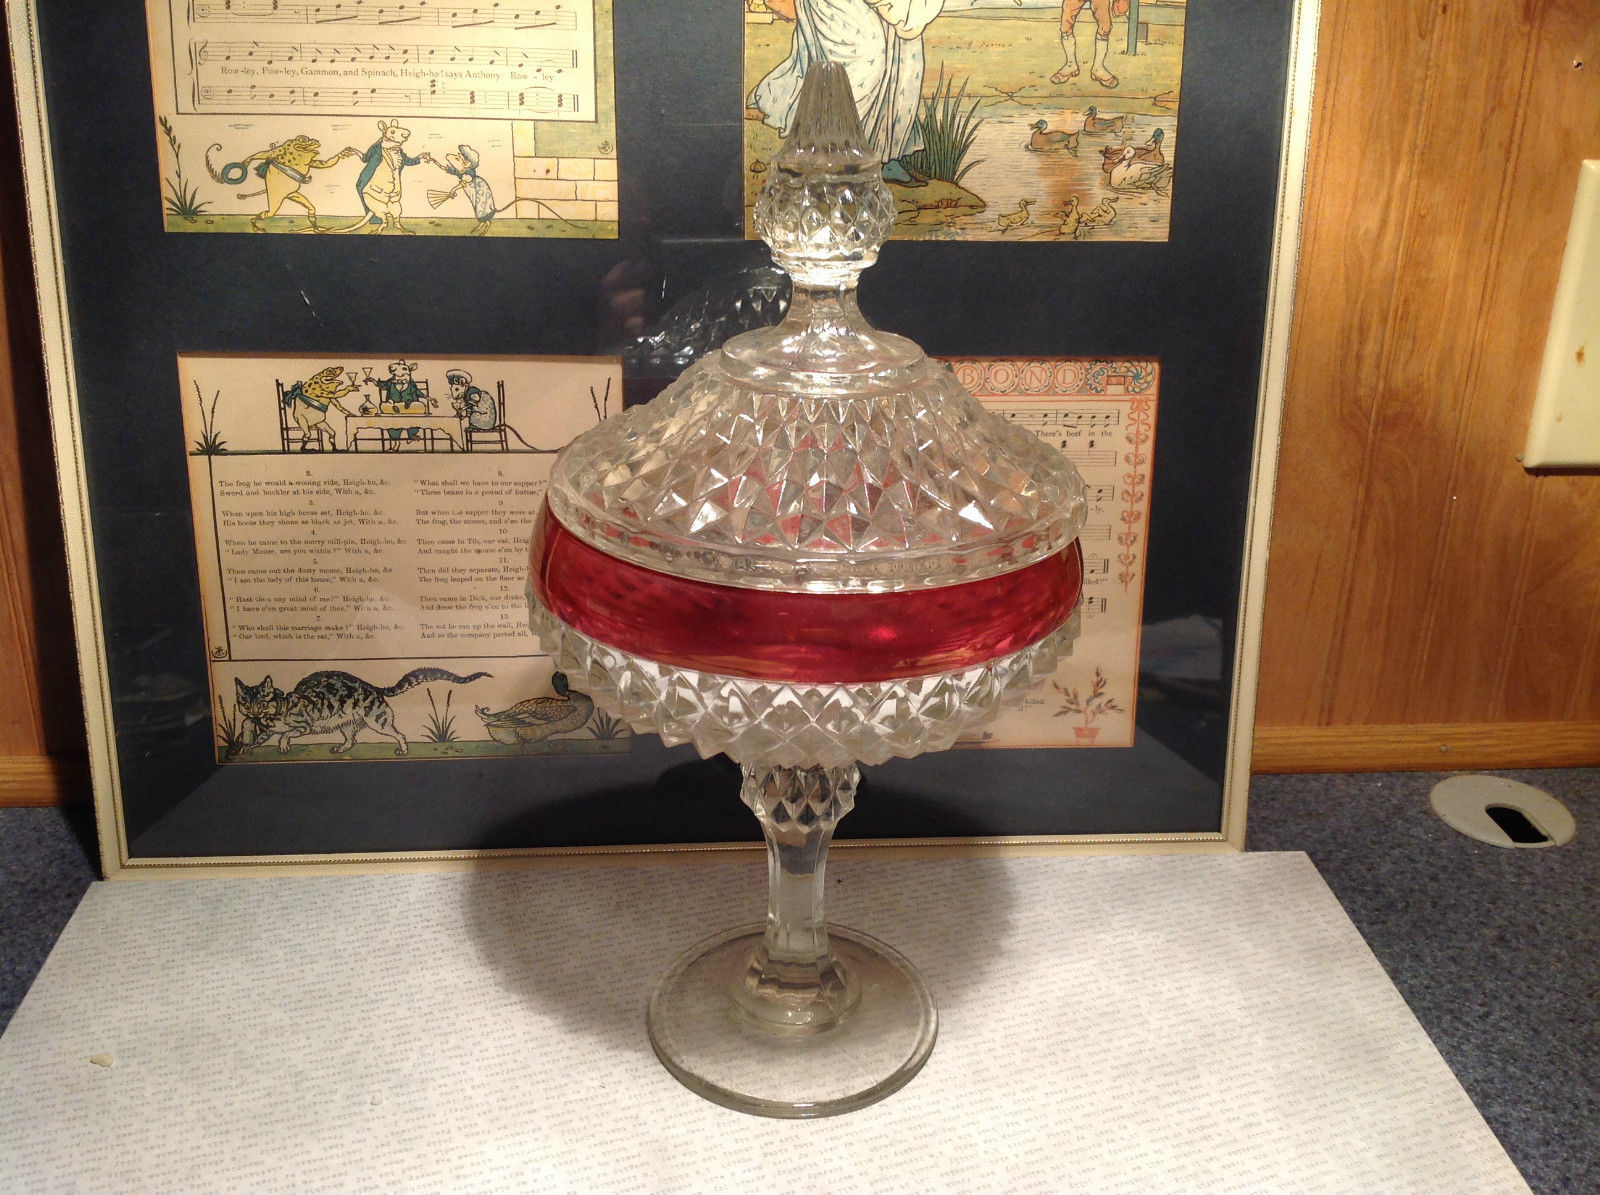 Diamond Pointed Lid Tall Glass Decorative Candy Dish 12 Inches High